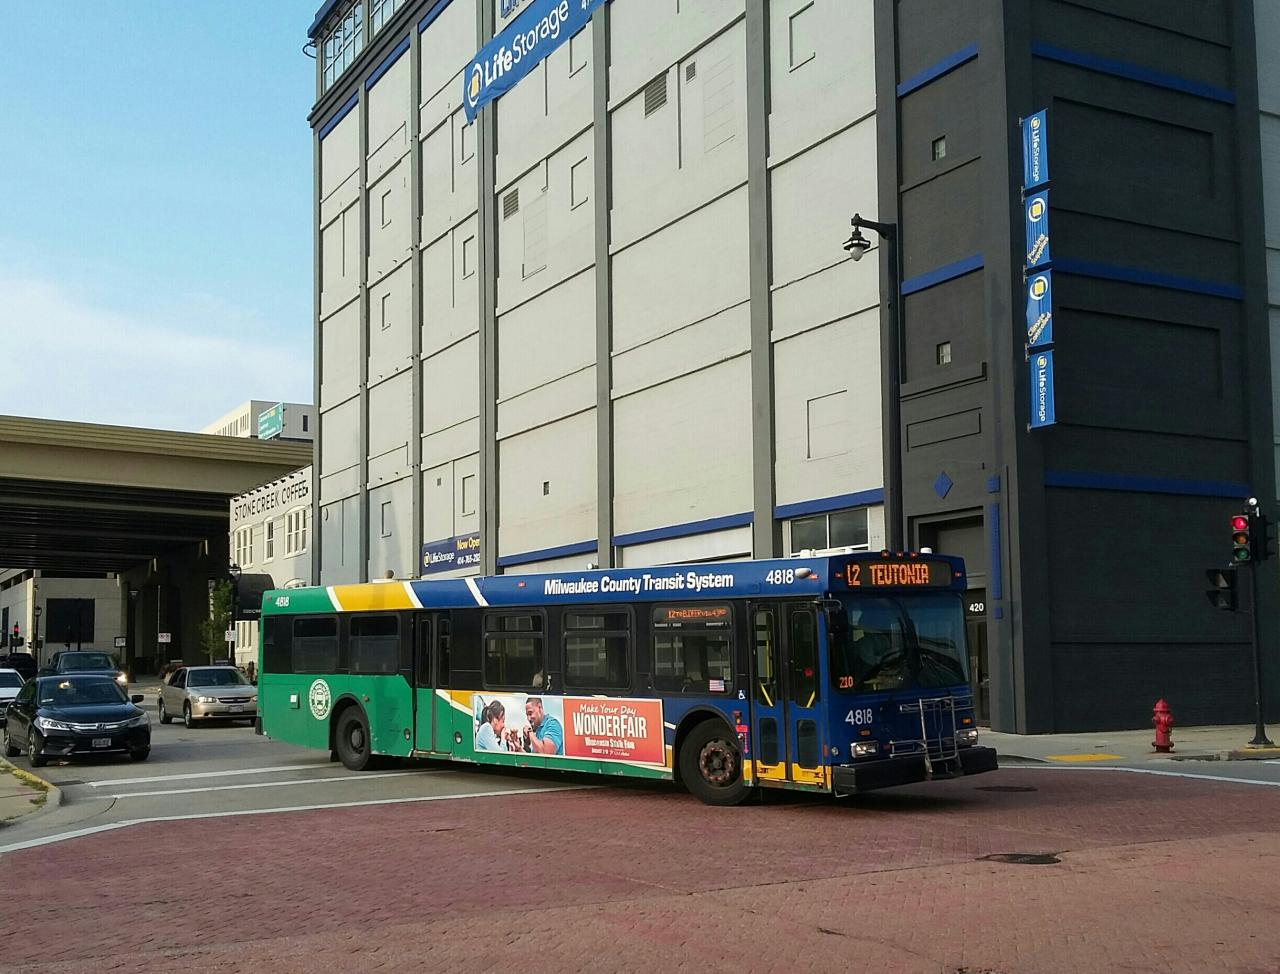 milwaukee county transit system - content changes and additions